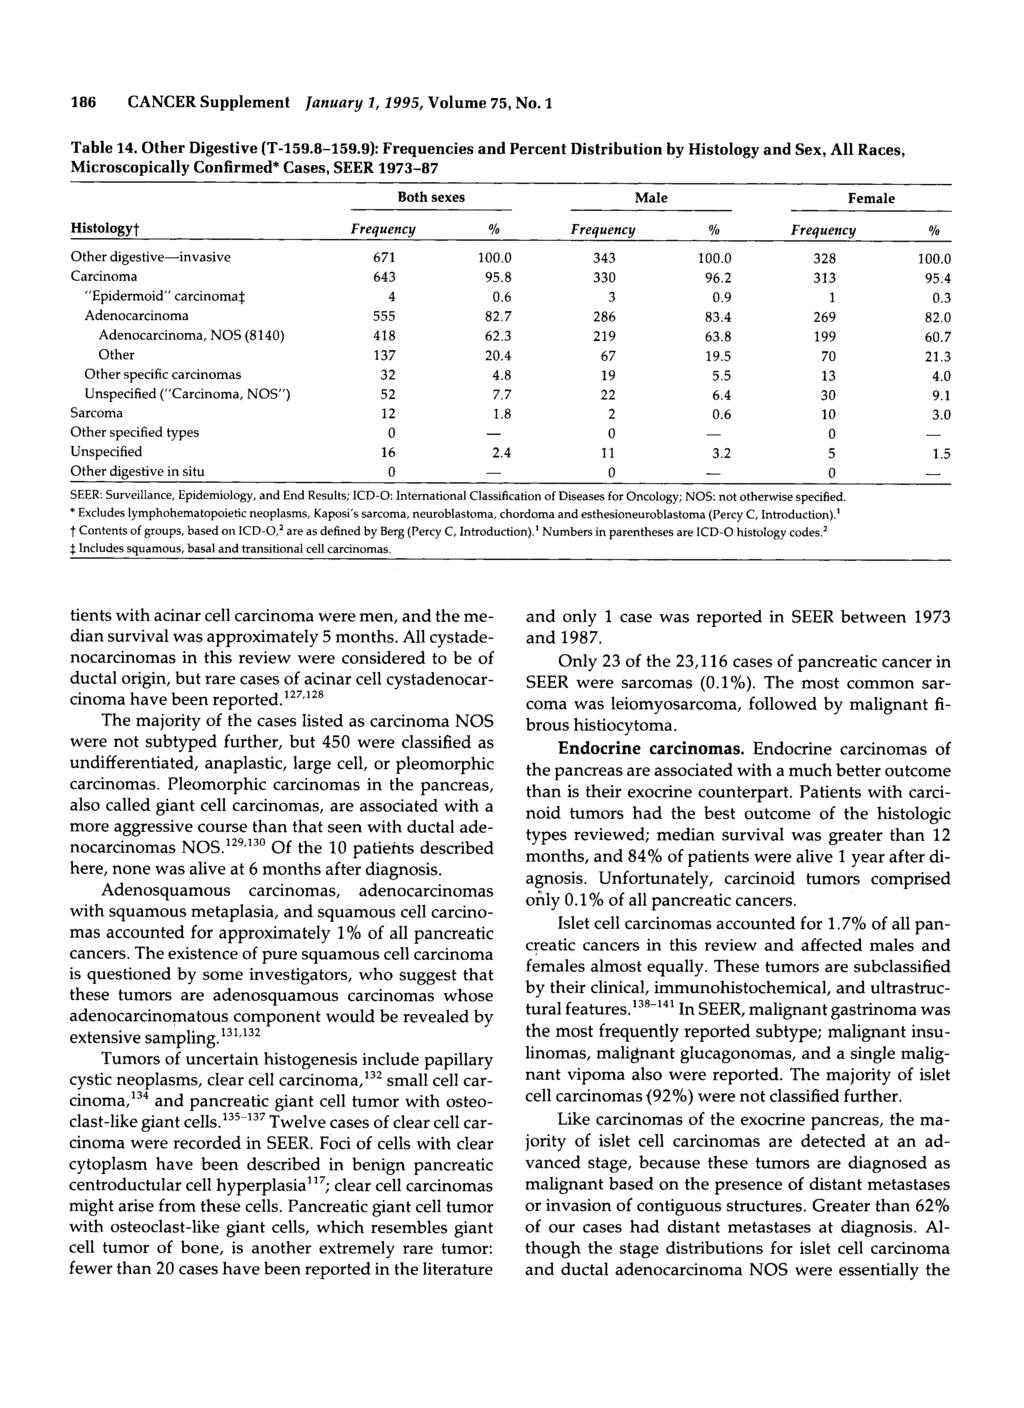 186 CANCER Supplement January 2,2995, Volume 75, No. 1 Table 14. Other Digestive (T159.8159.